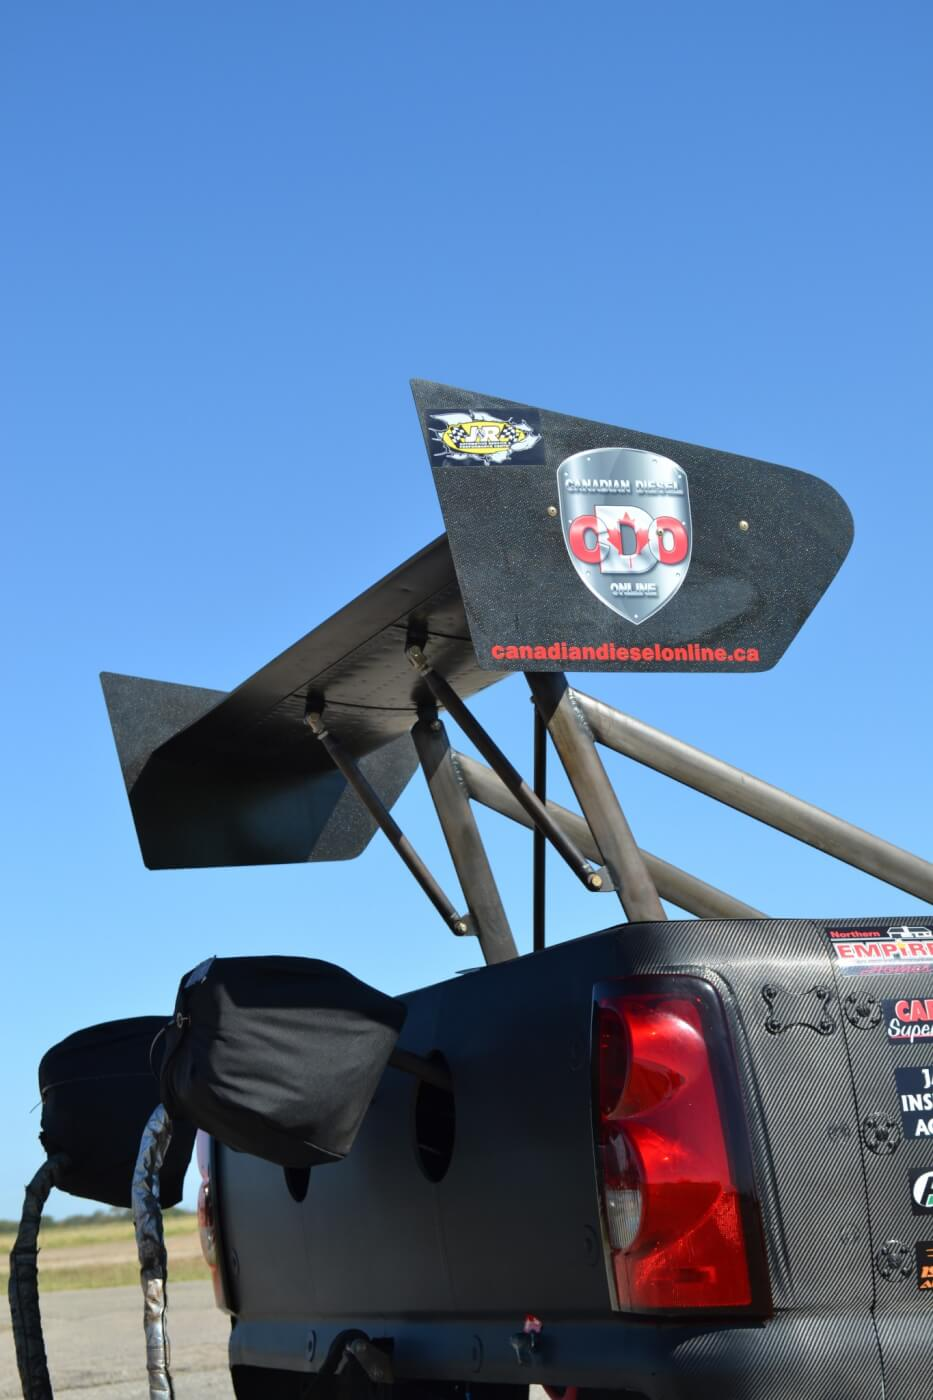 The team is aiming high when it comes to performance. The rear wing is a Top Fuel-style unit that provides an awesome amount of down force at the top end of the track to keep the truck straight, while the dual parachutes are an NHRA requirement in case the truck tops 200 mph in the quarter-mile, which is a very real possibility.